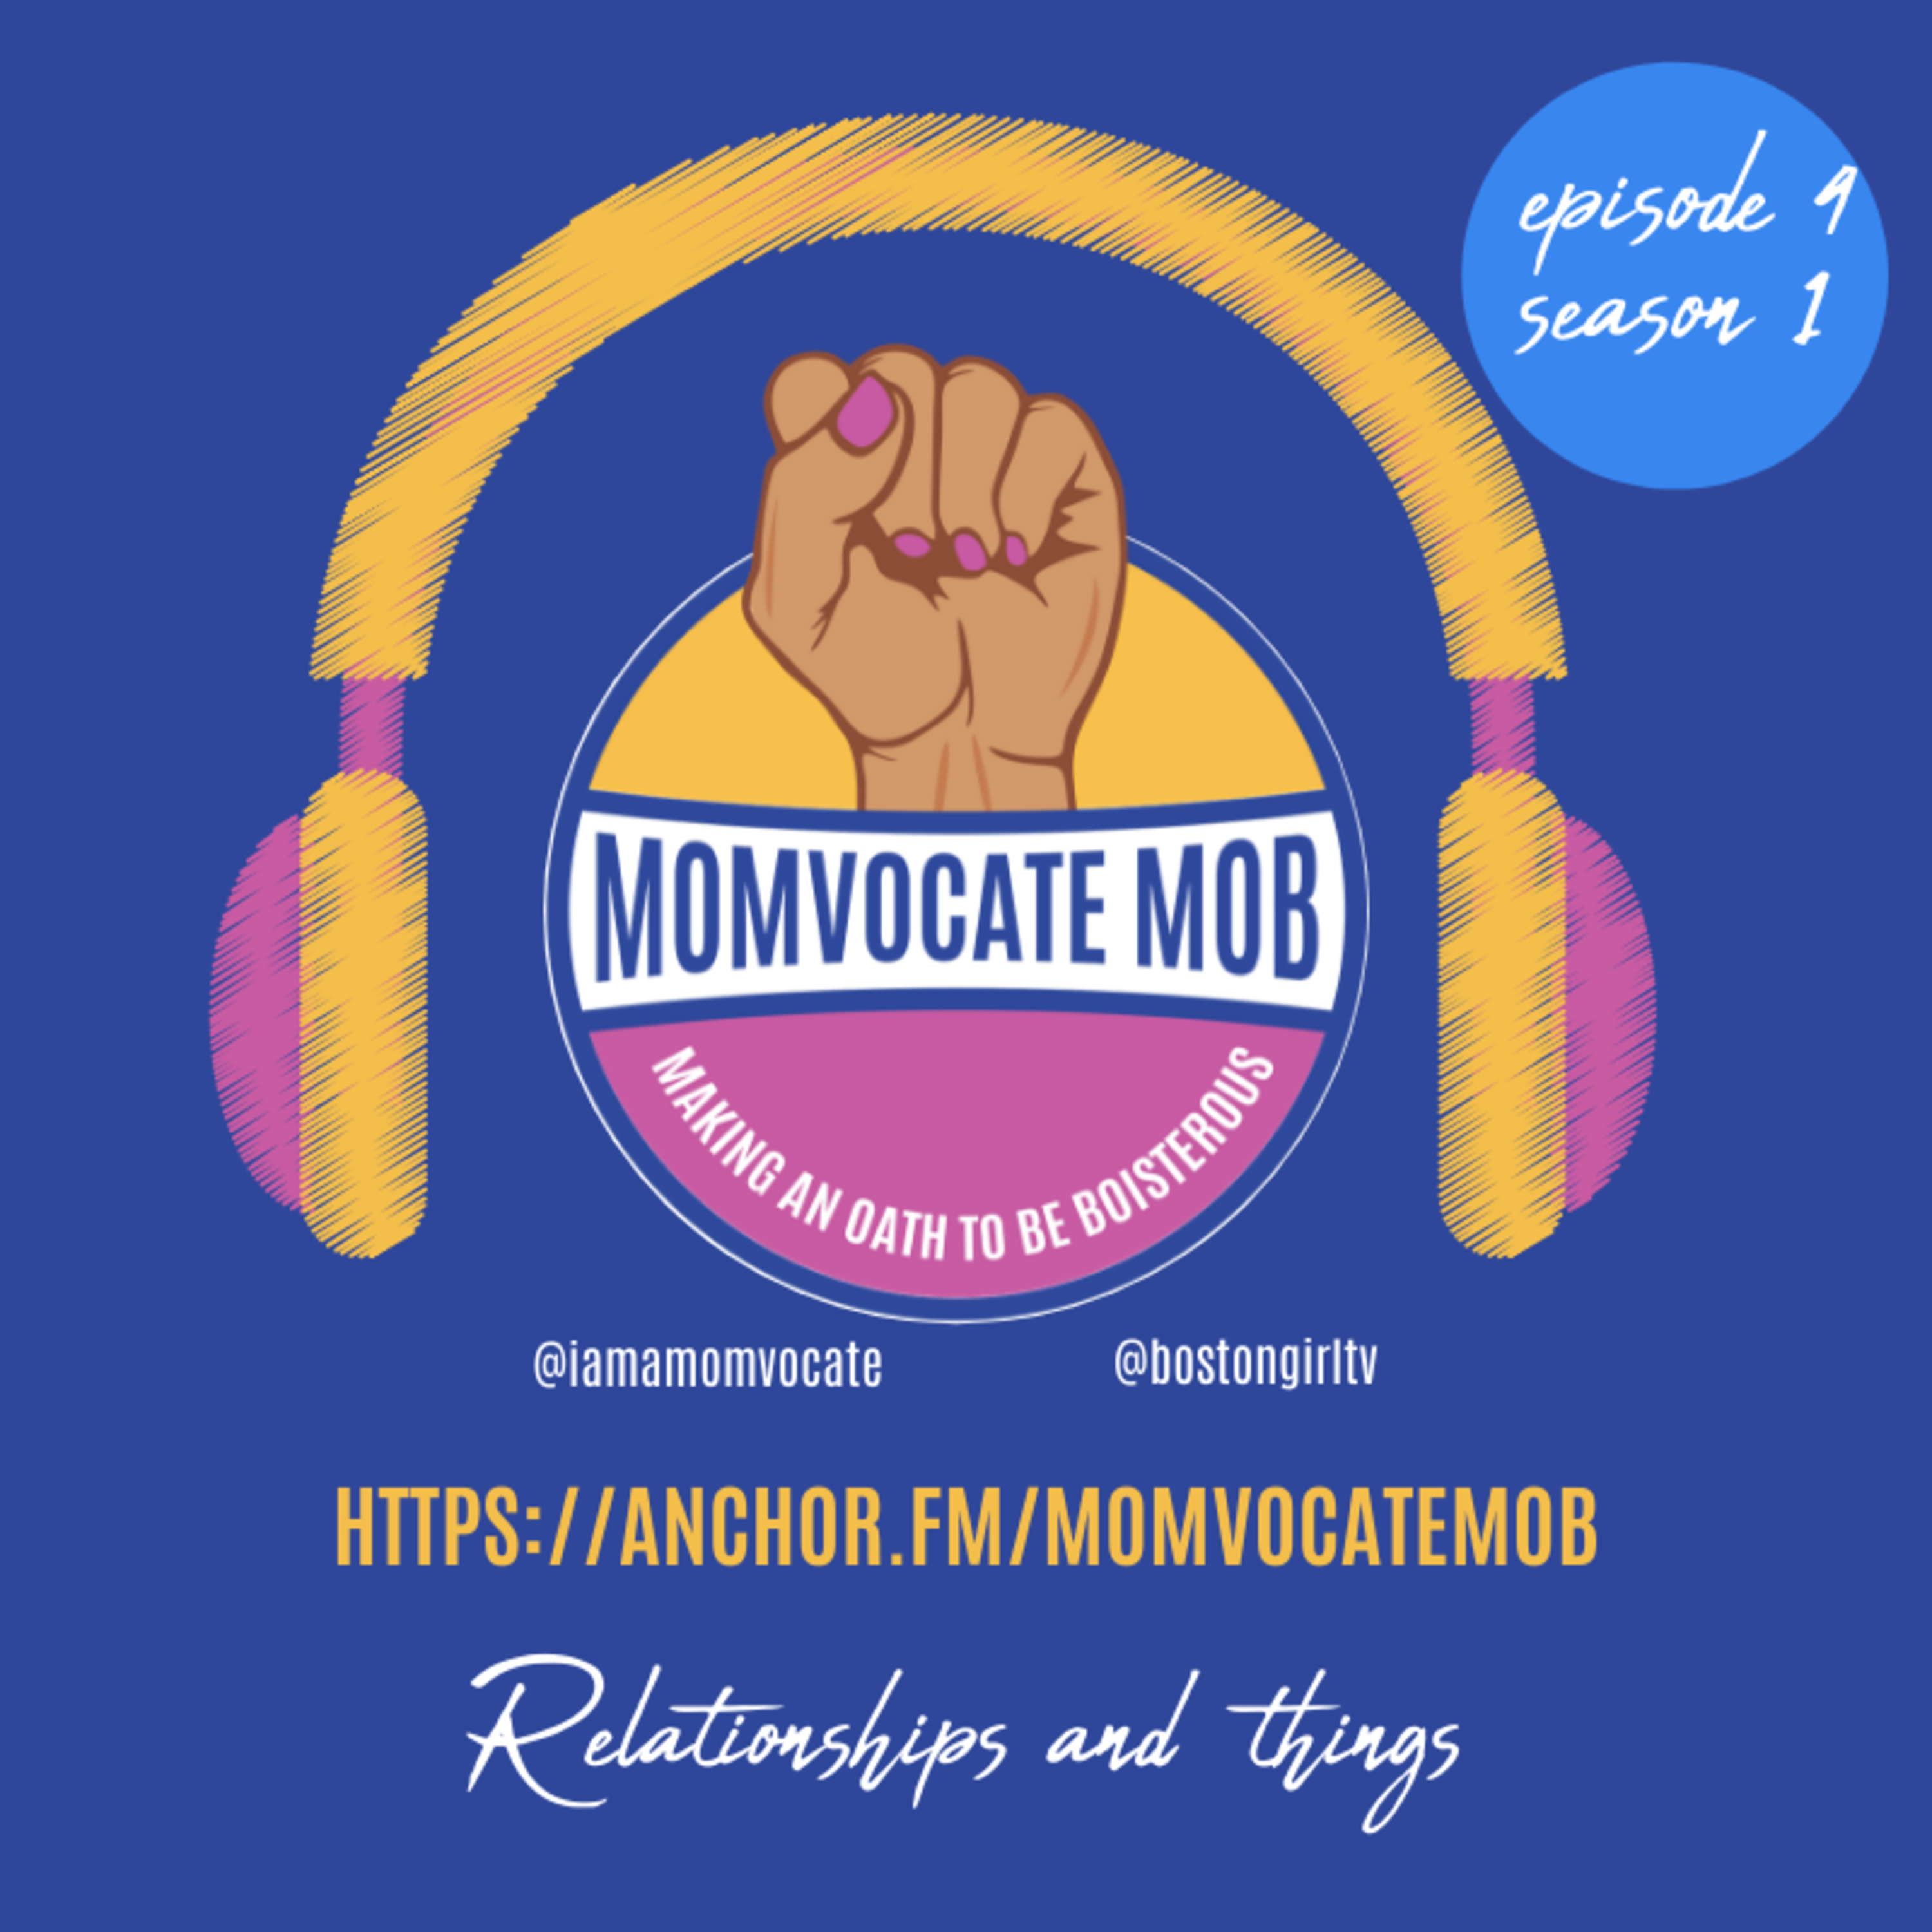 Momvocate Mob Podcast Episode 4 - Relationships and Life Things